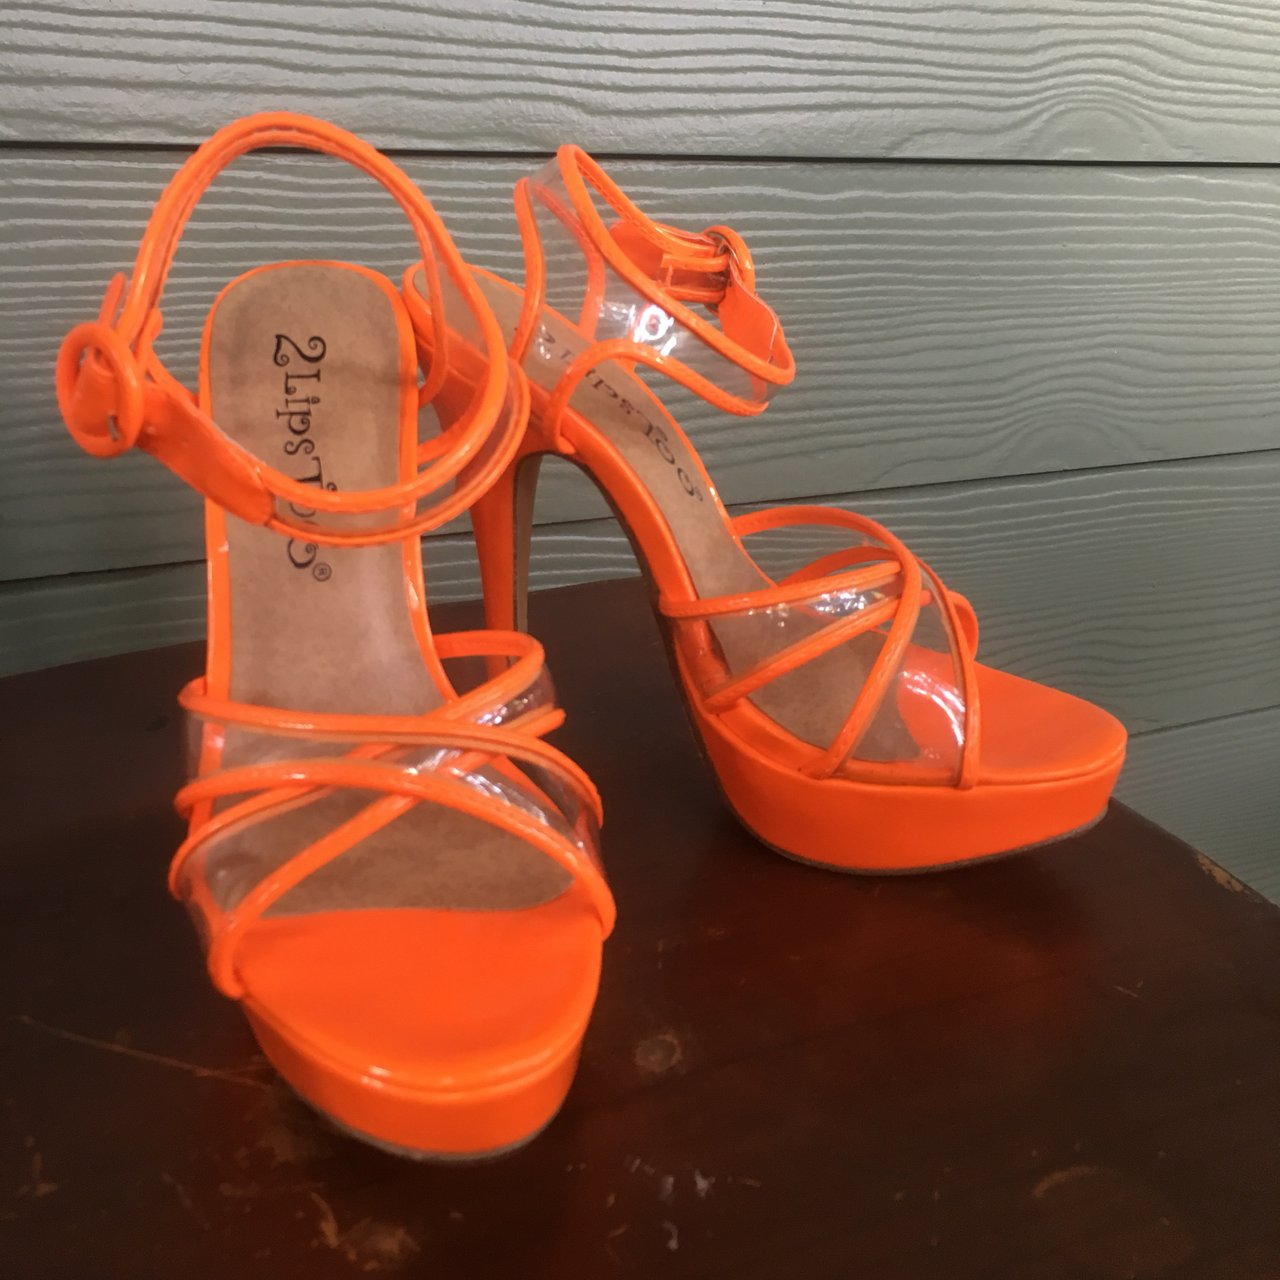 ad241883318 Neon orange heels with clear